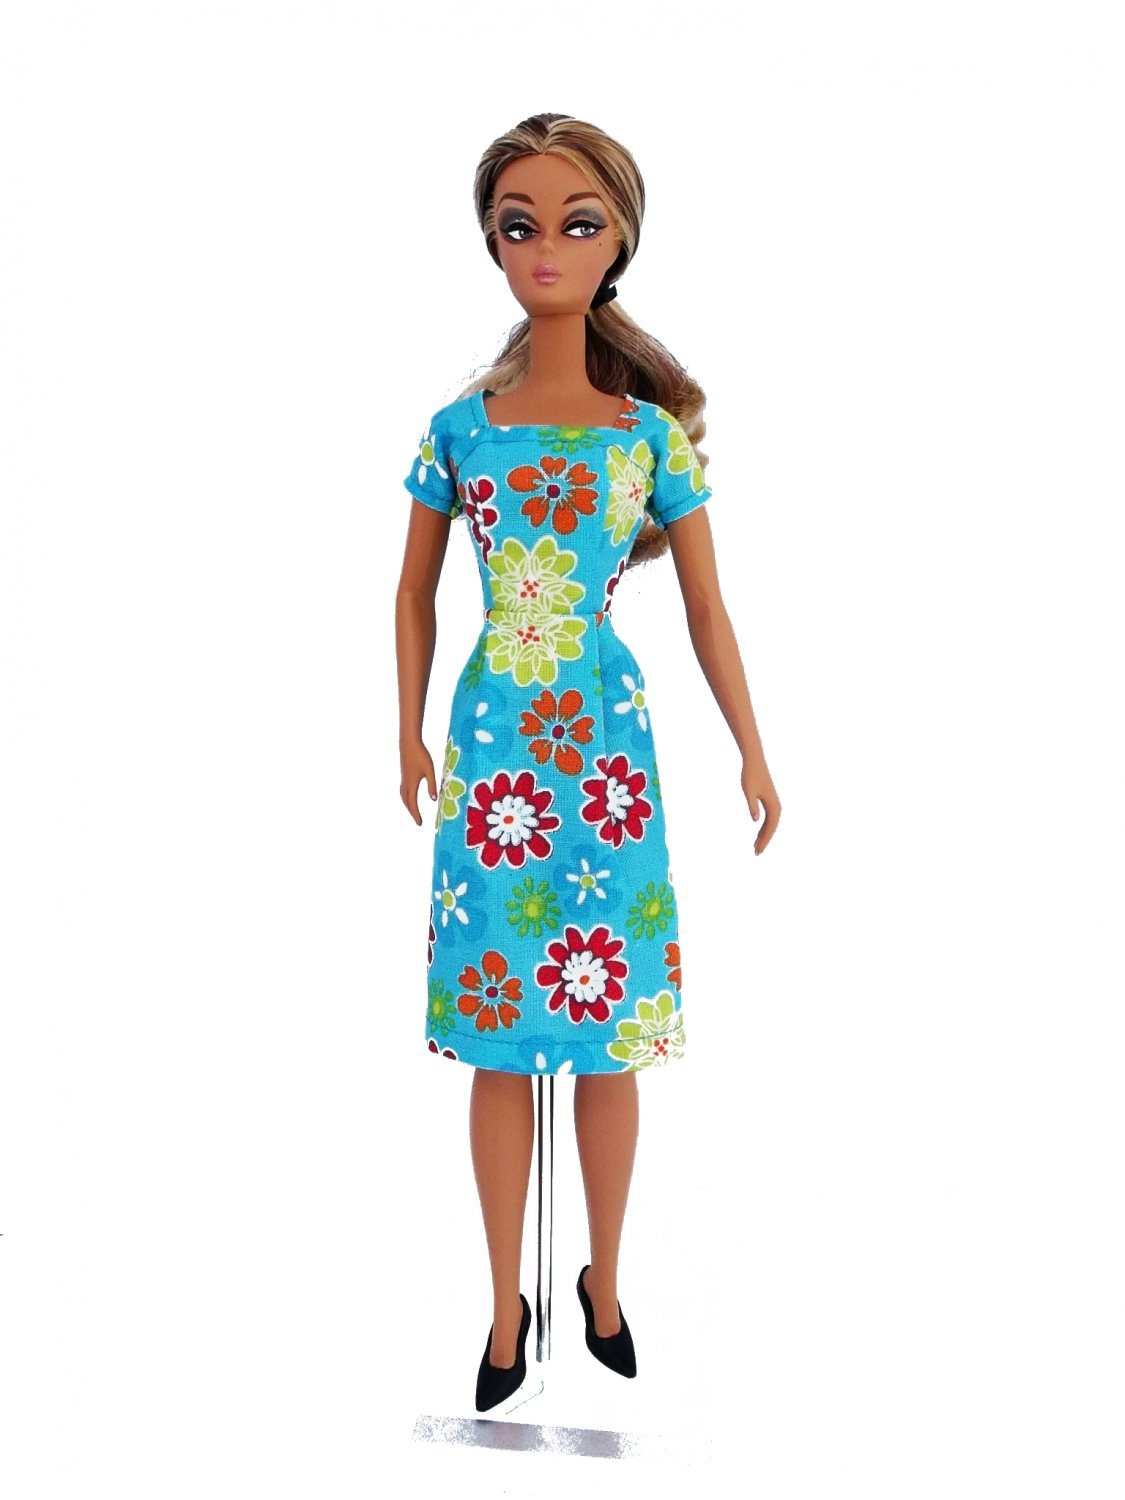 Barbie Clothes Barbie Dress Style Vintage Blue